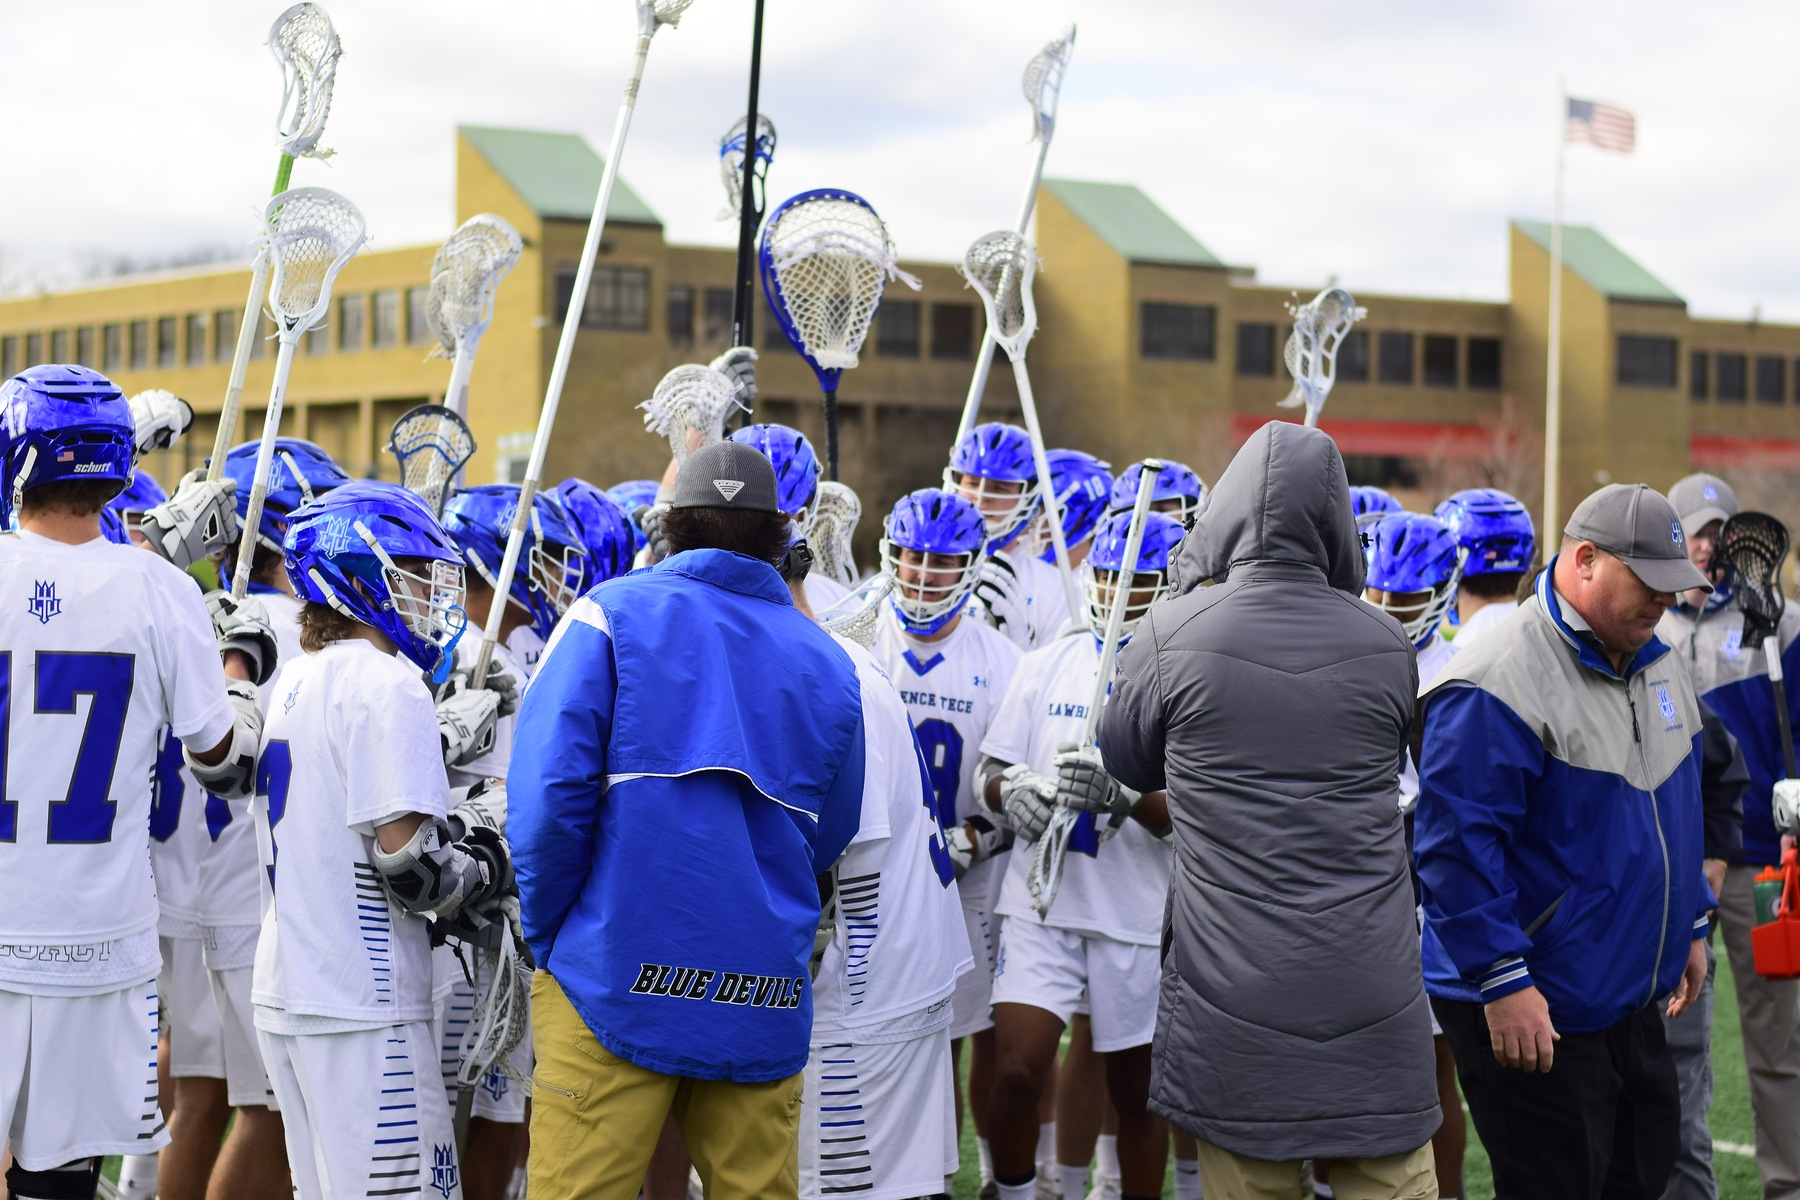 Men's Lacrosse Conclude 2019 Season with 10-9 Loss Versus Aquinas in First Round of NAIA National Invite